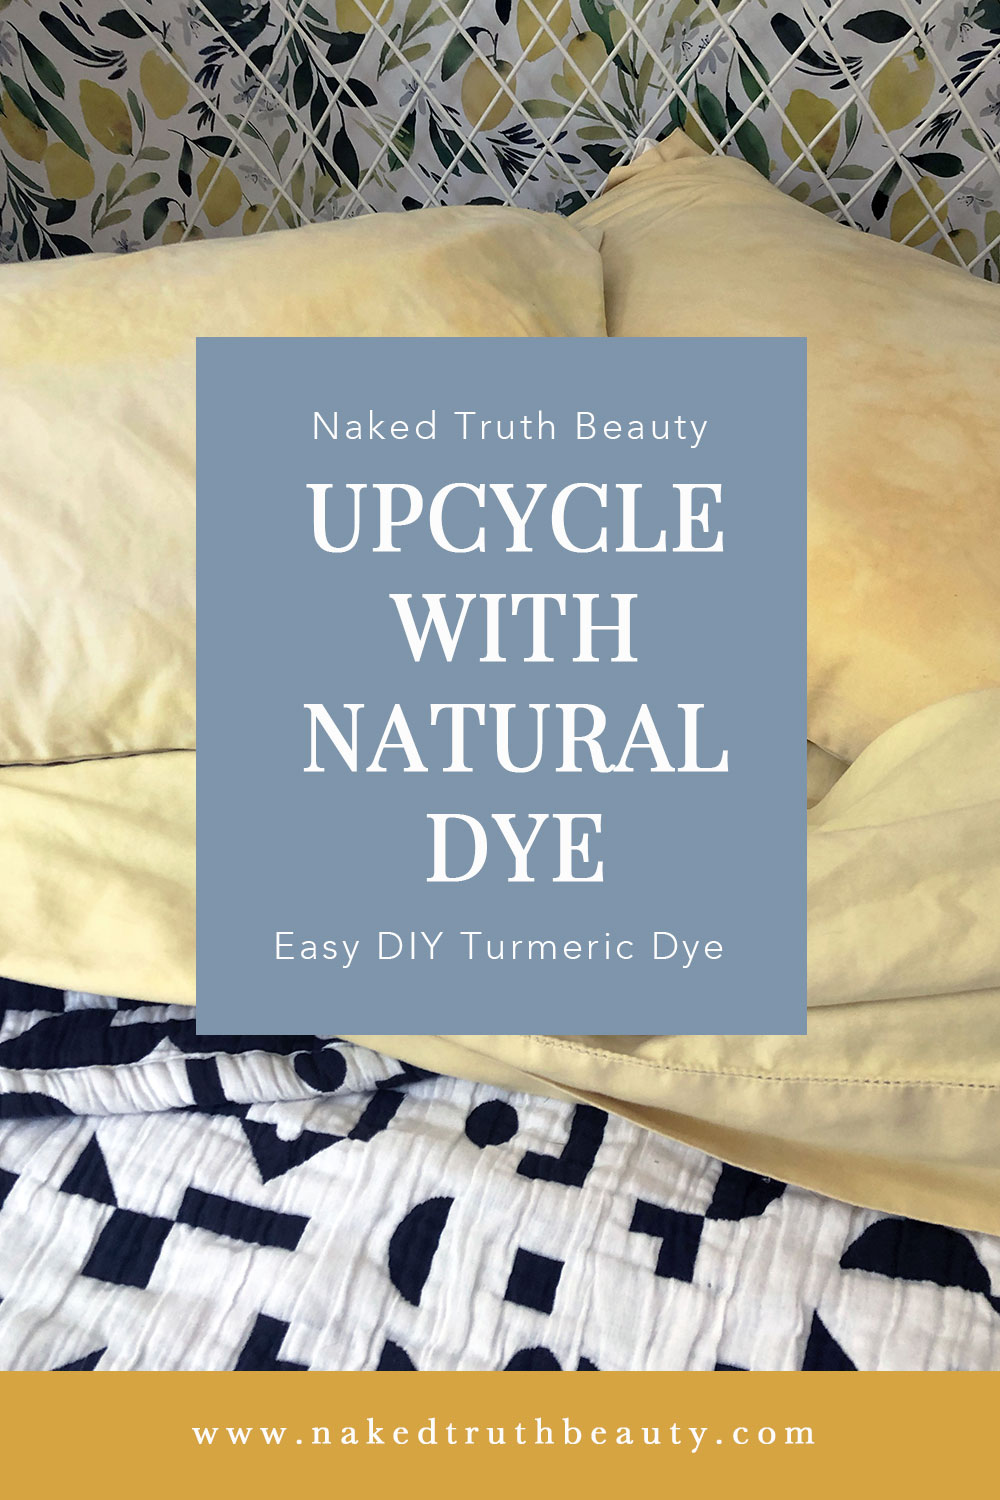 Upcycle old sheets and clothes with easy DIY turmeric dye / How to do DIY Natural Dye